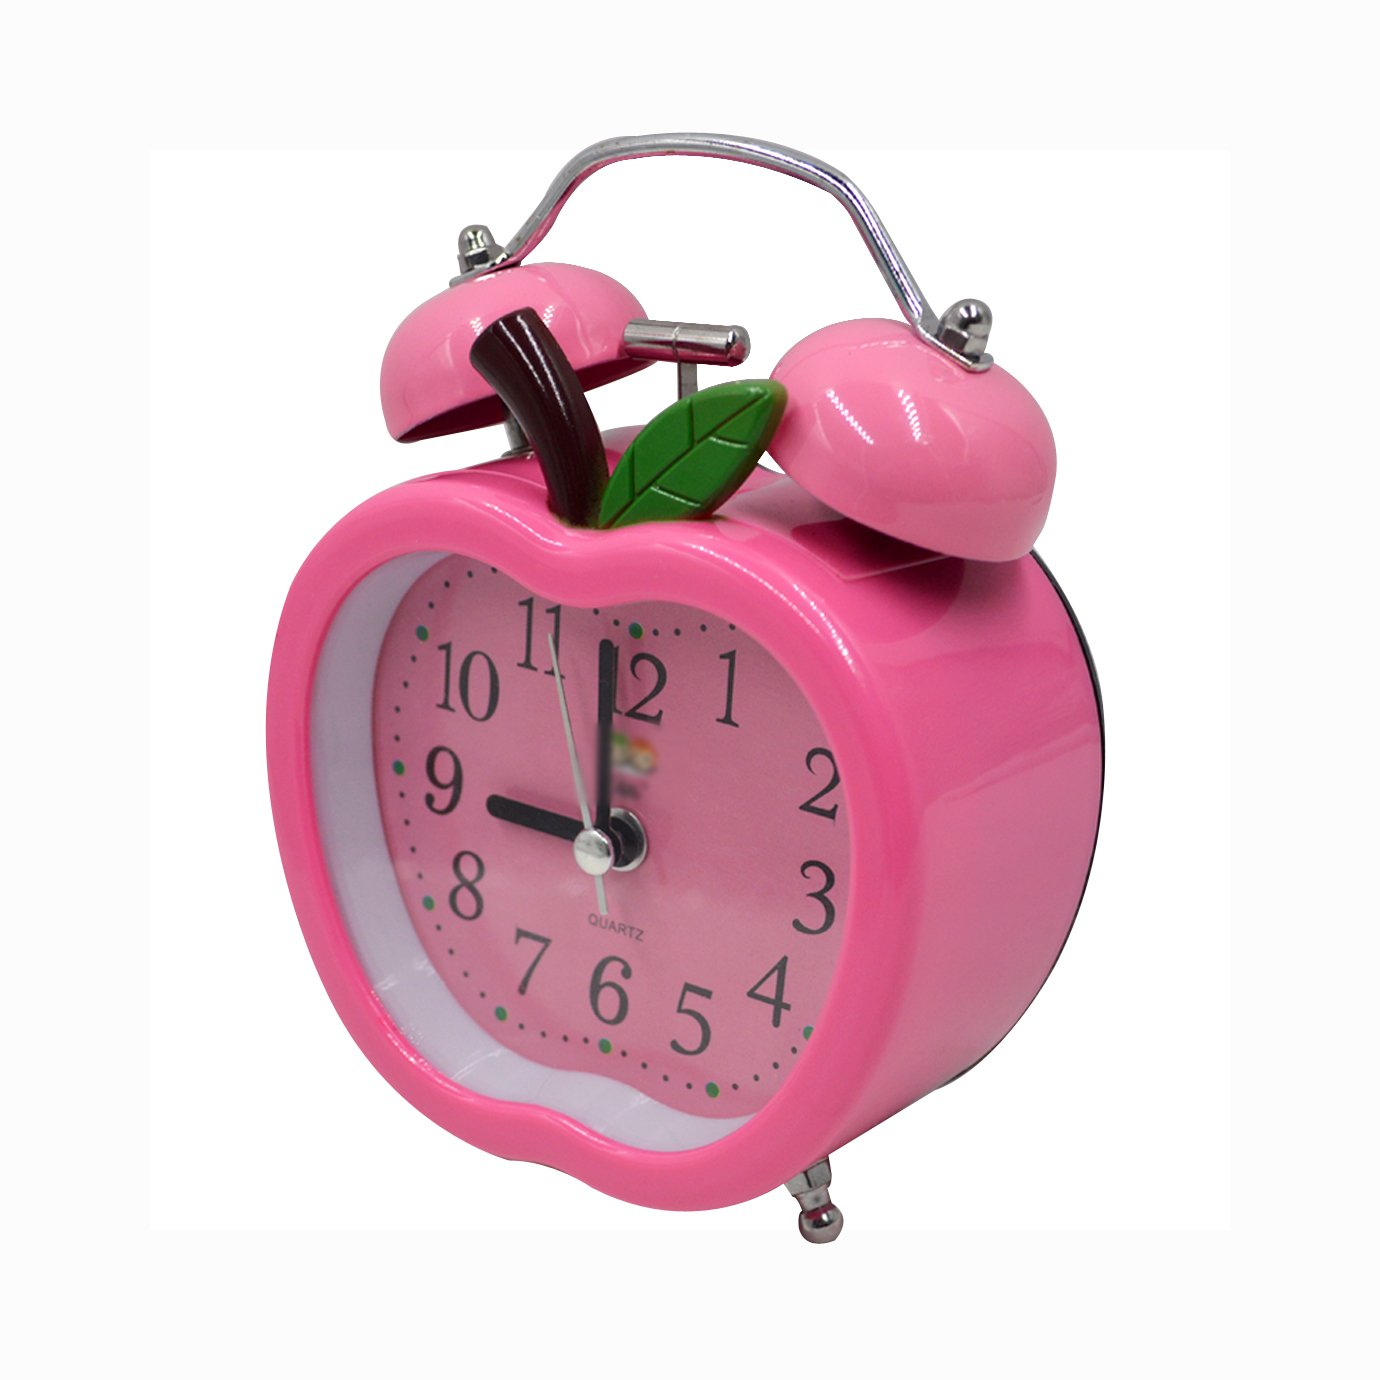 CLARA Cute Apple Shape Time Alarm Clock Retro Clock With Nightlight For Kids Children(Pink)